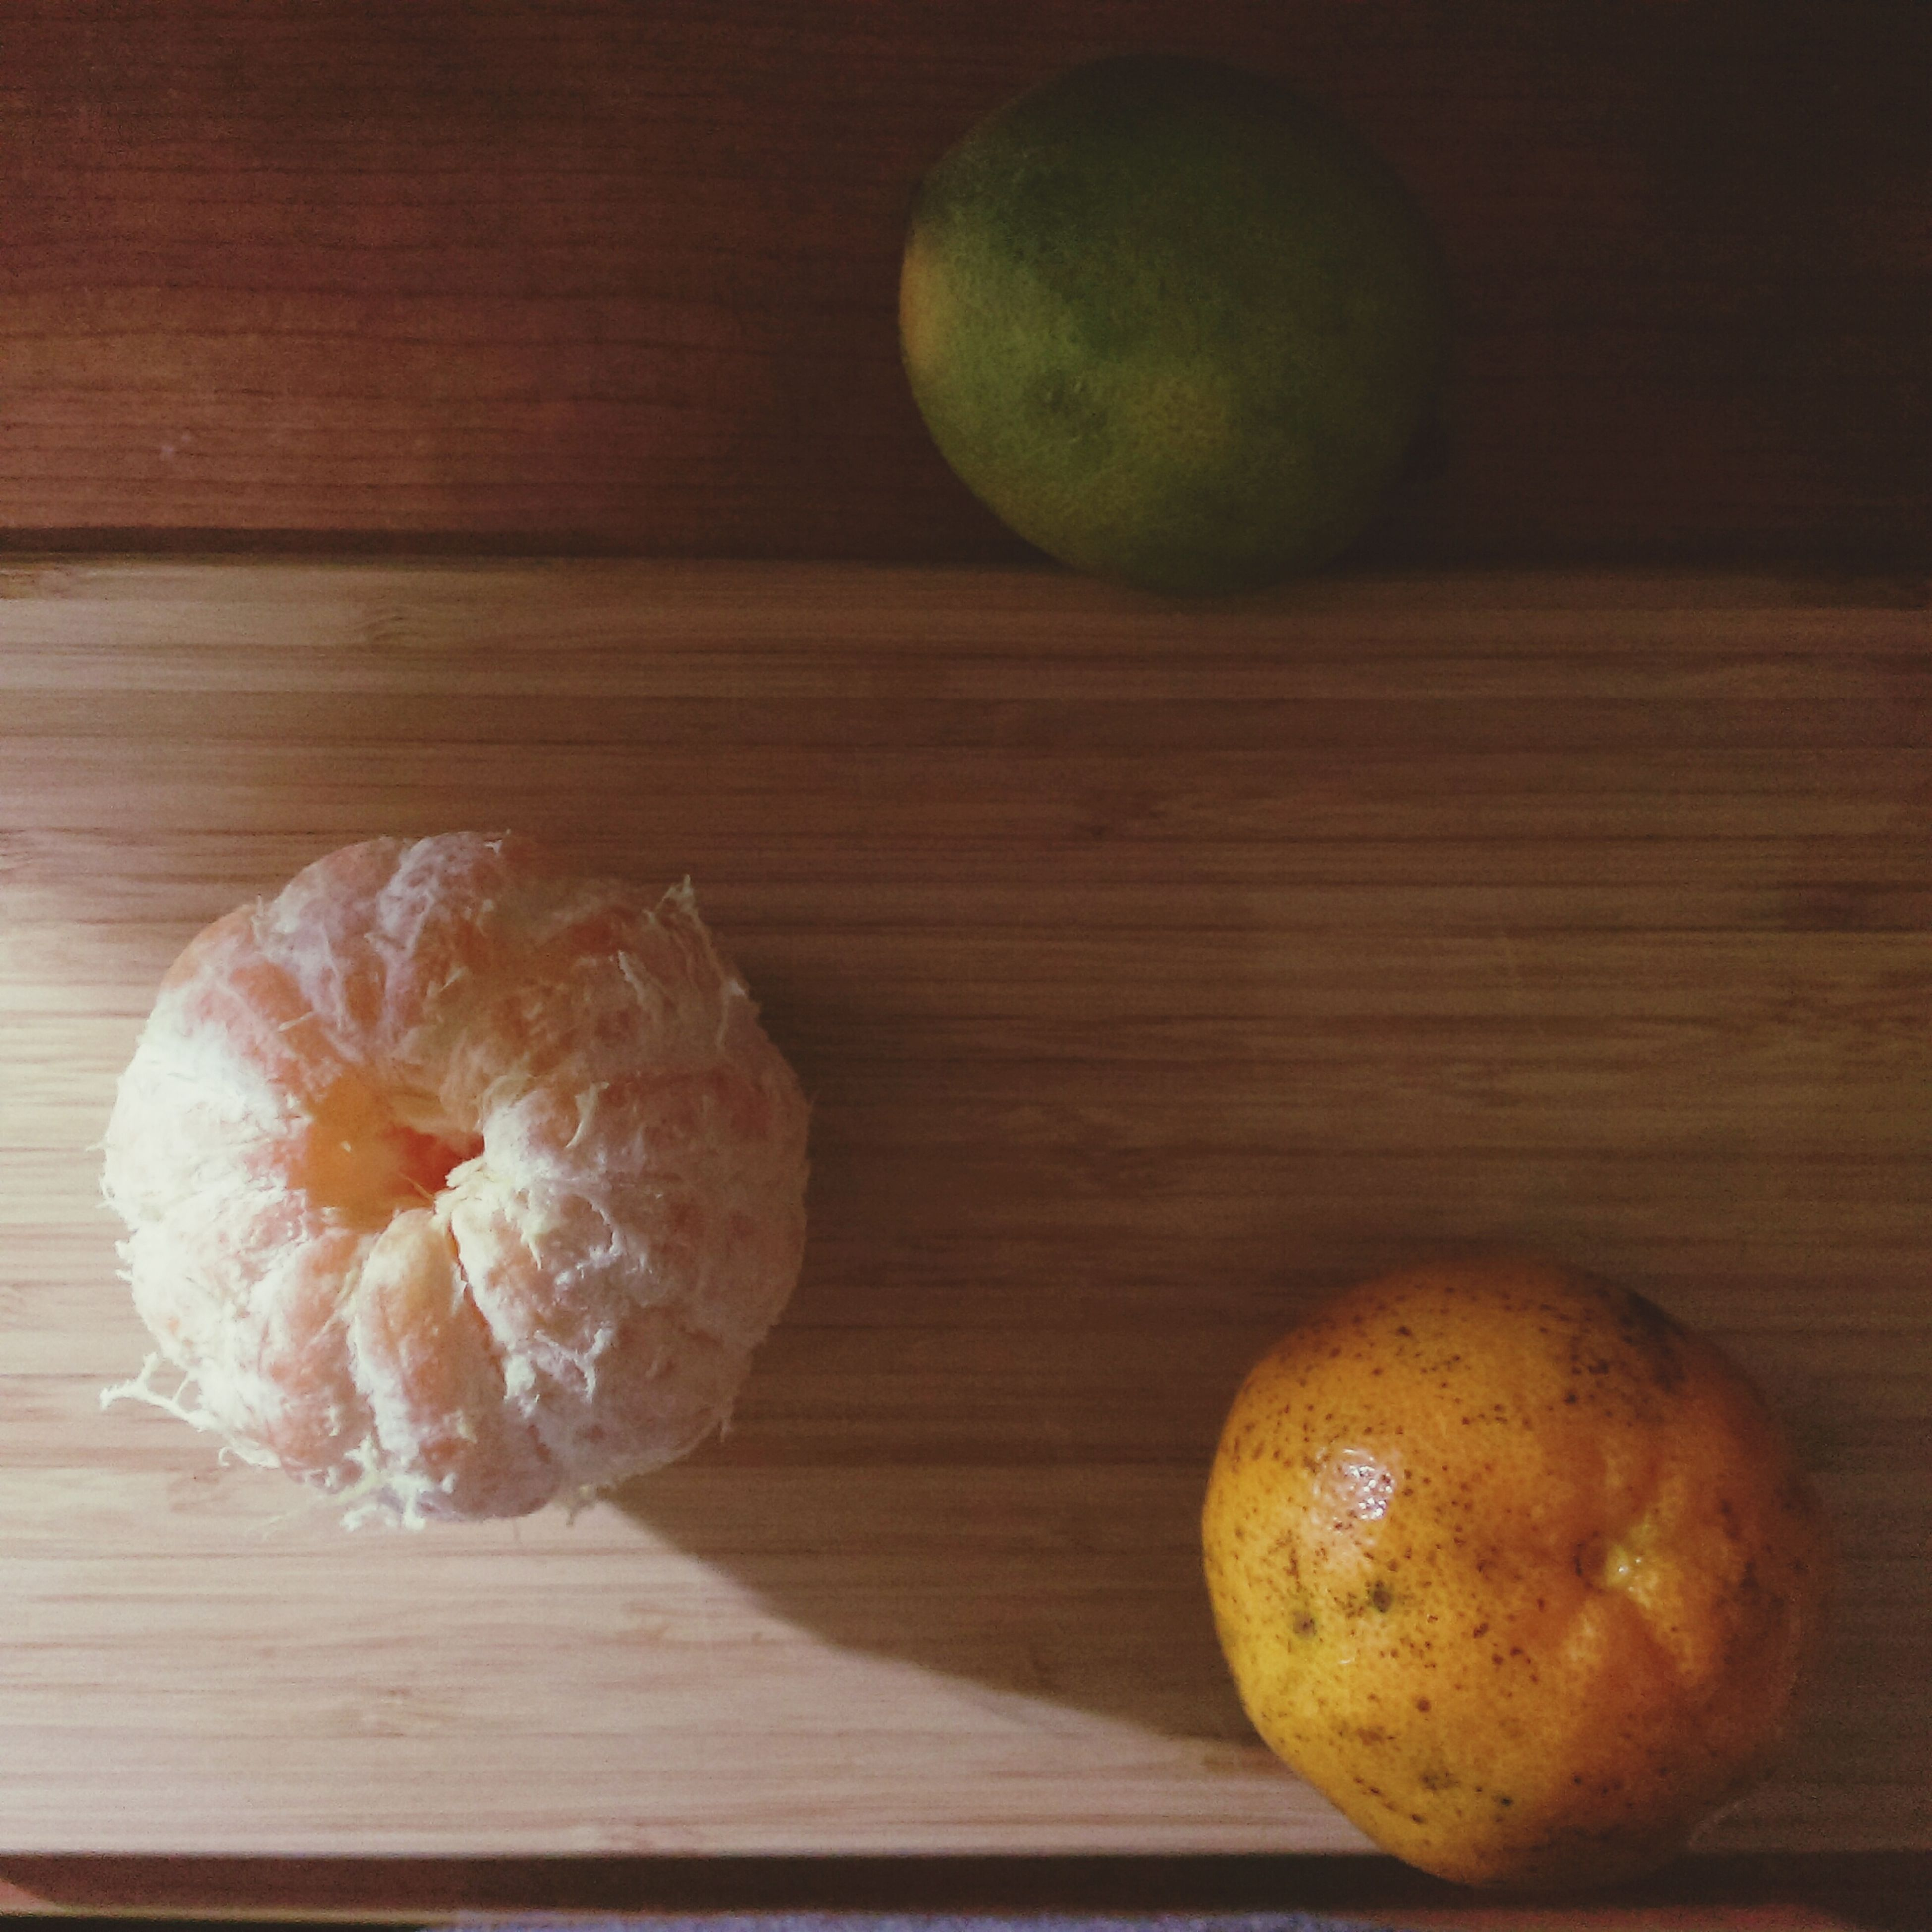 food and drink, indoors, food, table, freshness, still life, healthy eating, wood - material, fruit, wooden, close-up, high angle view, ready-to-eat, vegetable, no people, wood, directly above, slice, sweet food, bread